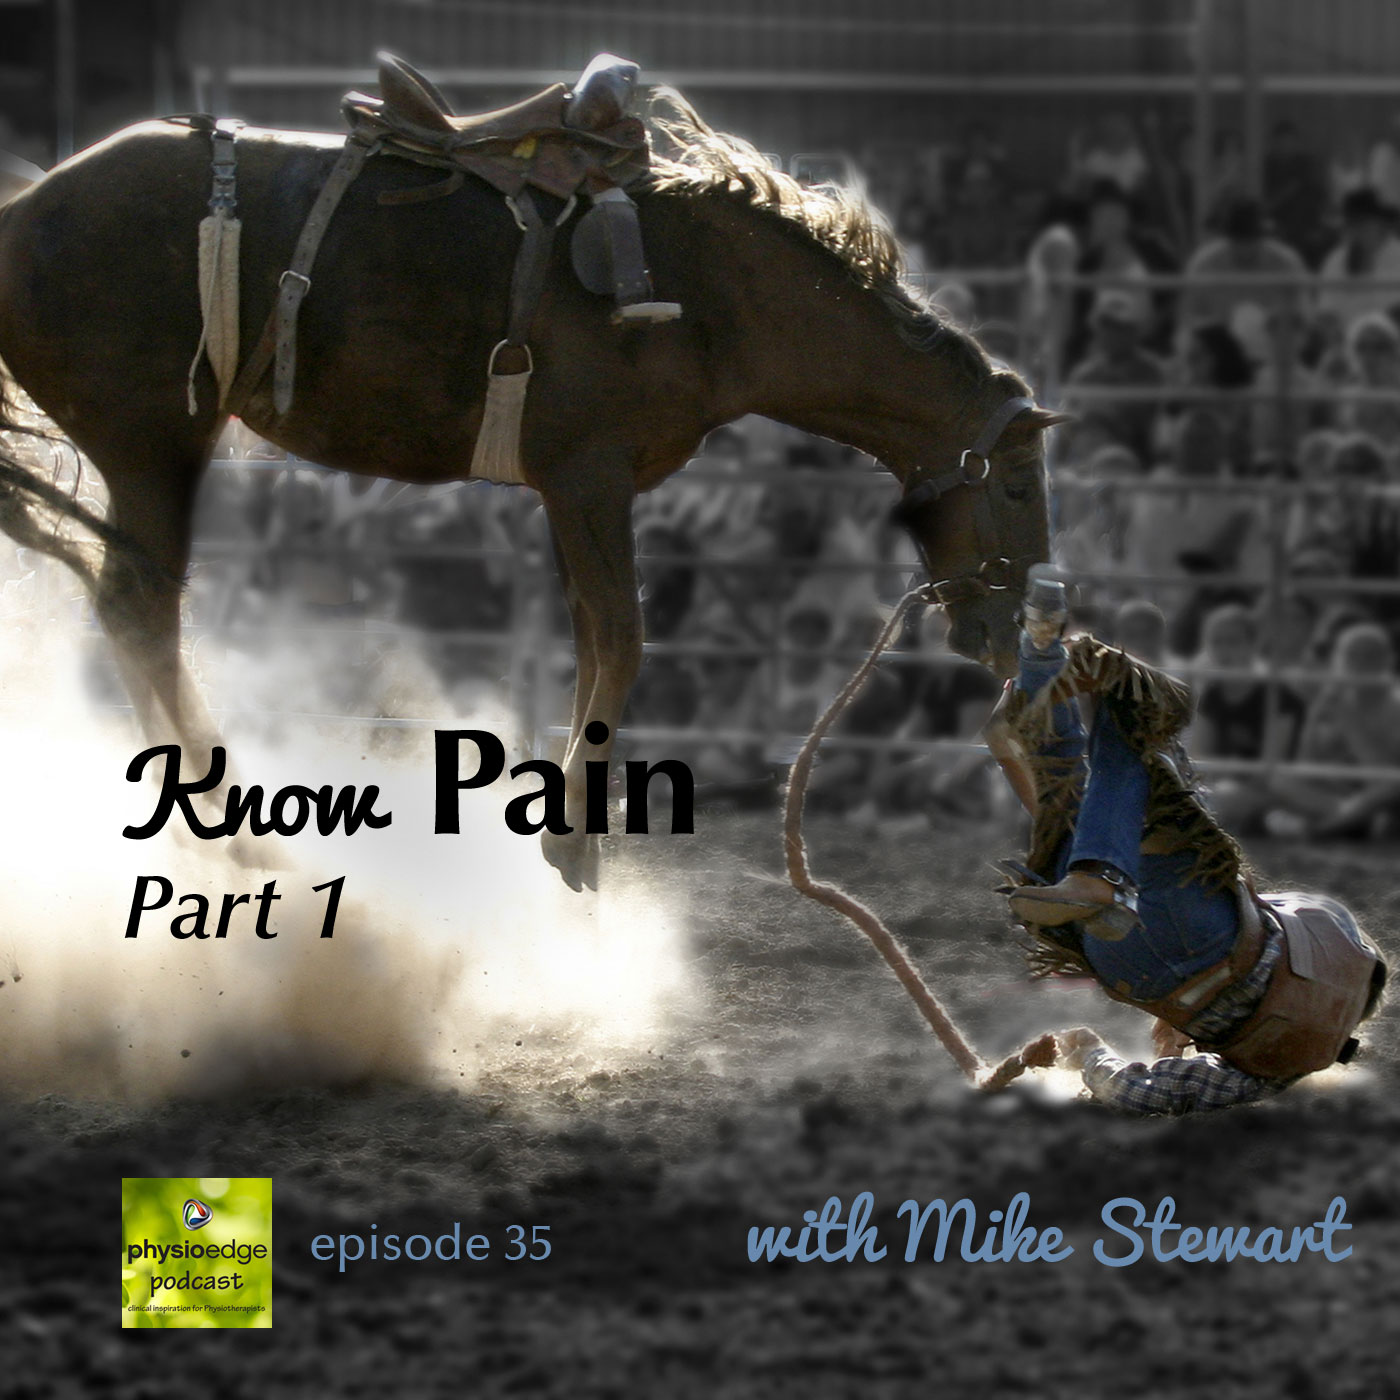 PE035 Know Pain with Mike Stewart